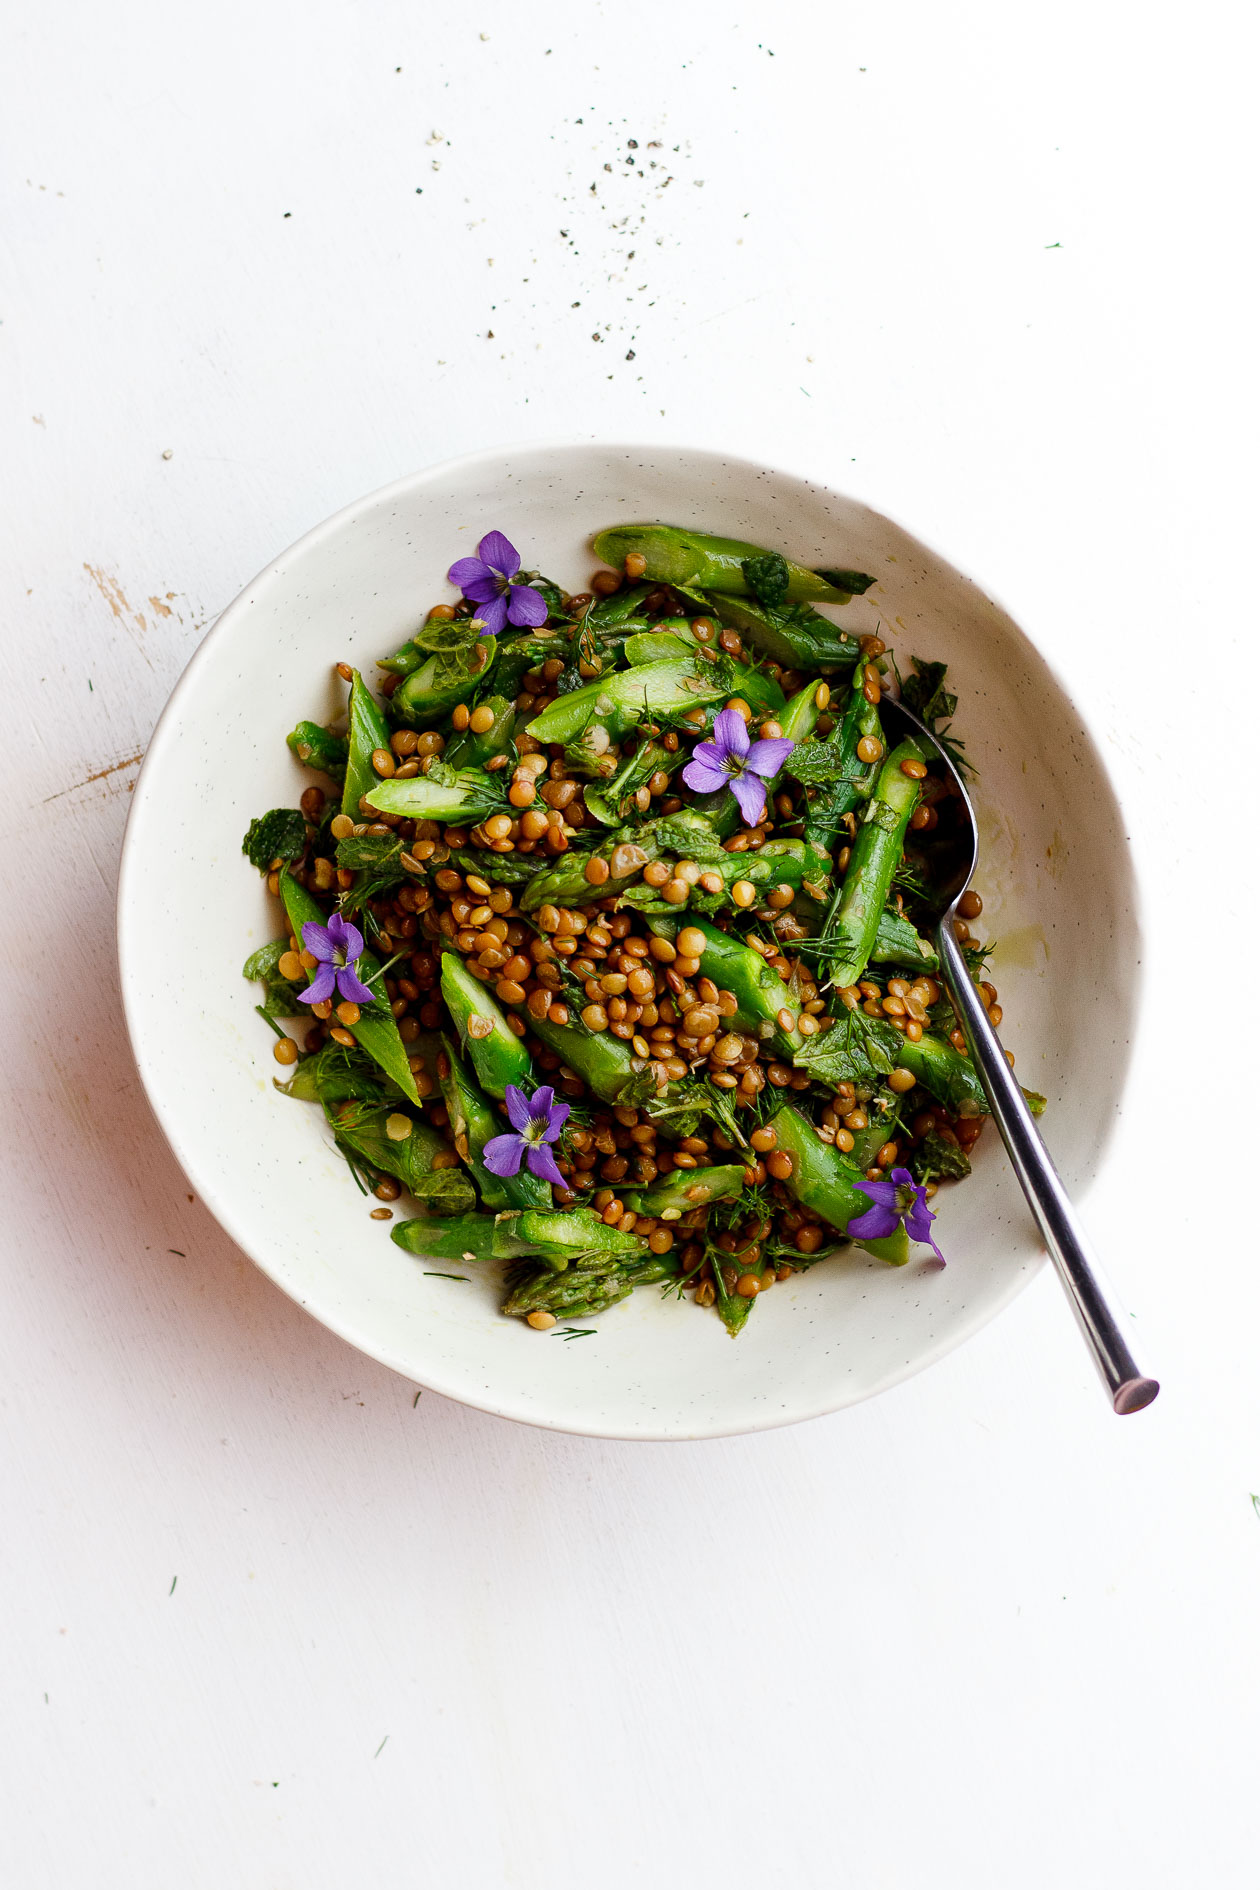 ASPARAGUS LENTIL SALAD WITH HEMP SEED OIL